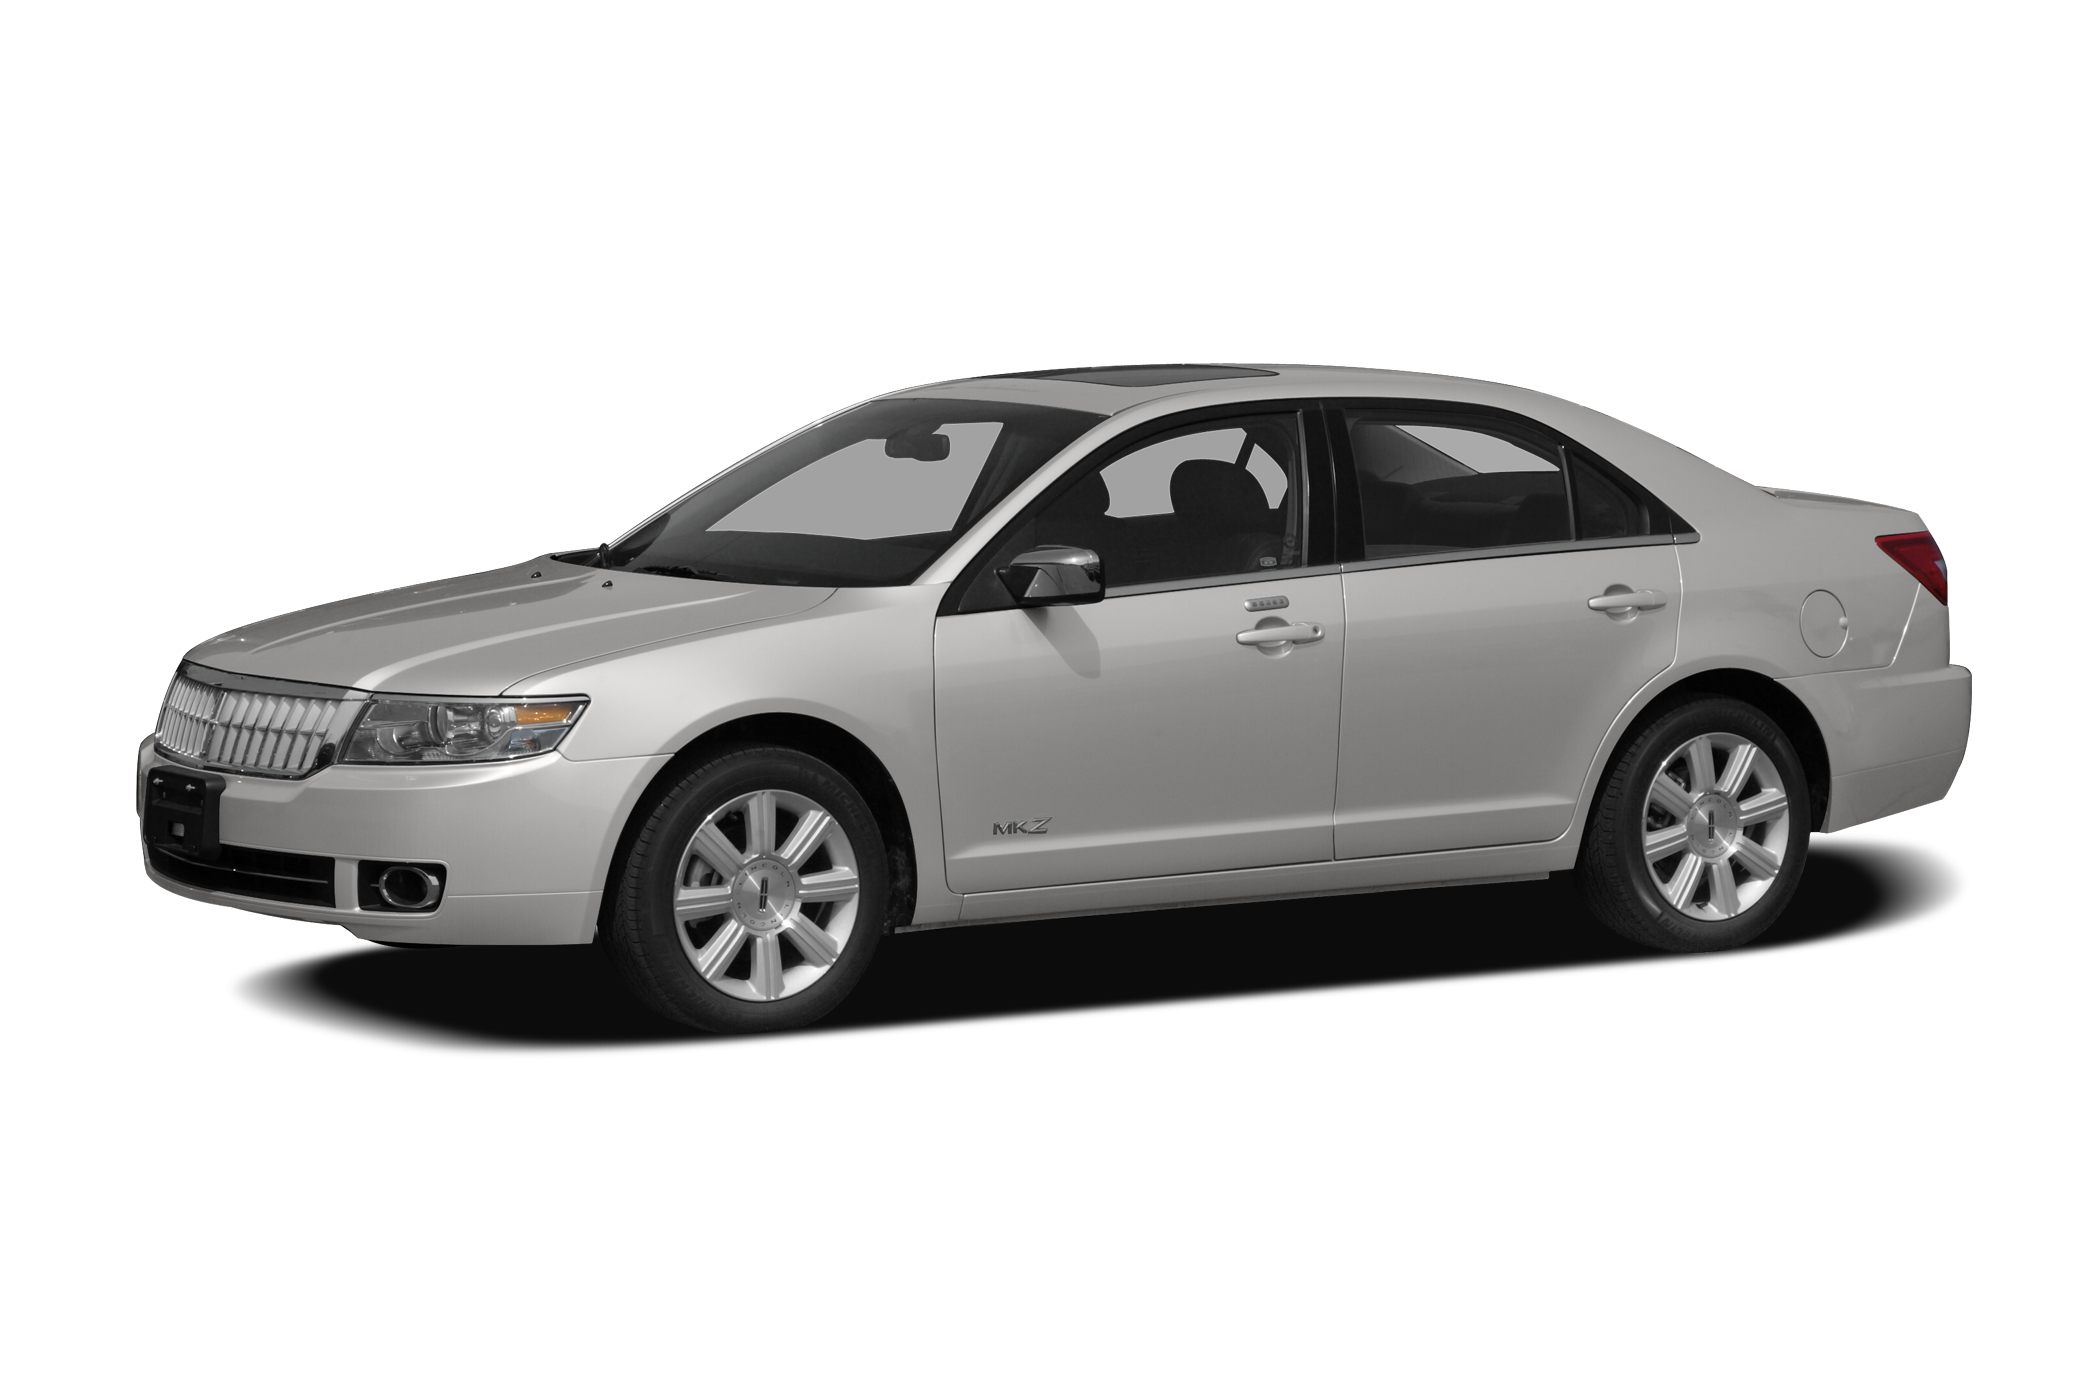 2008 Lincoln MKZ Sedan for sale in Danielson for $13,800 with 95,813 miles.